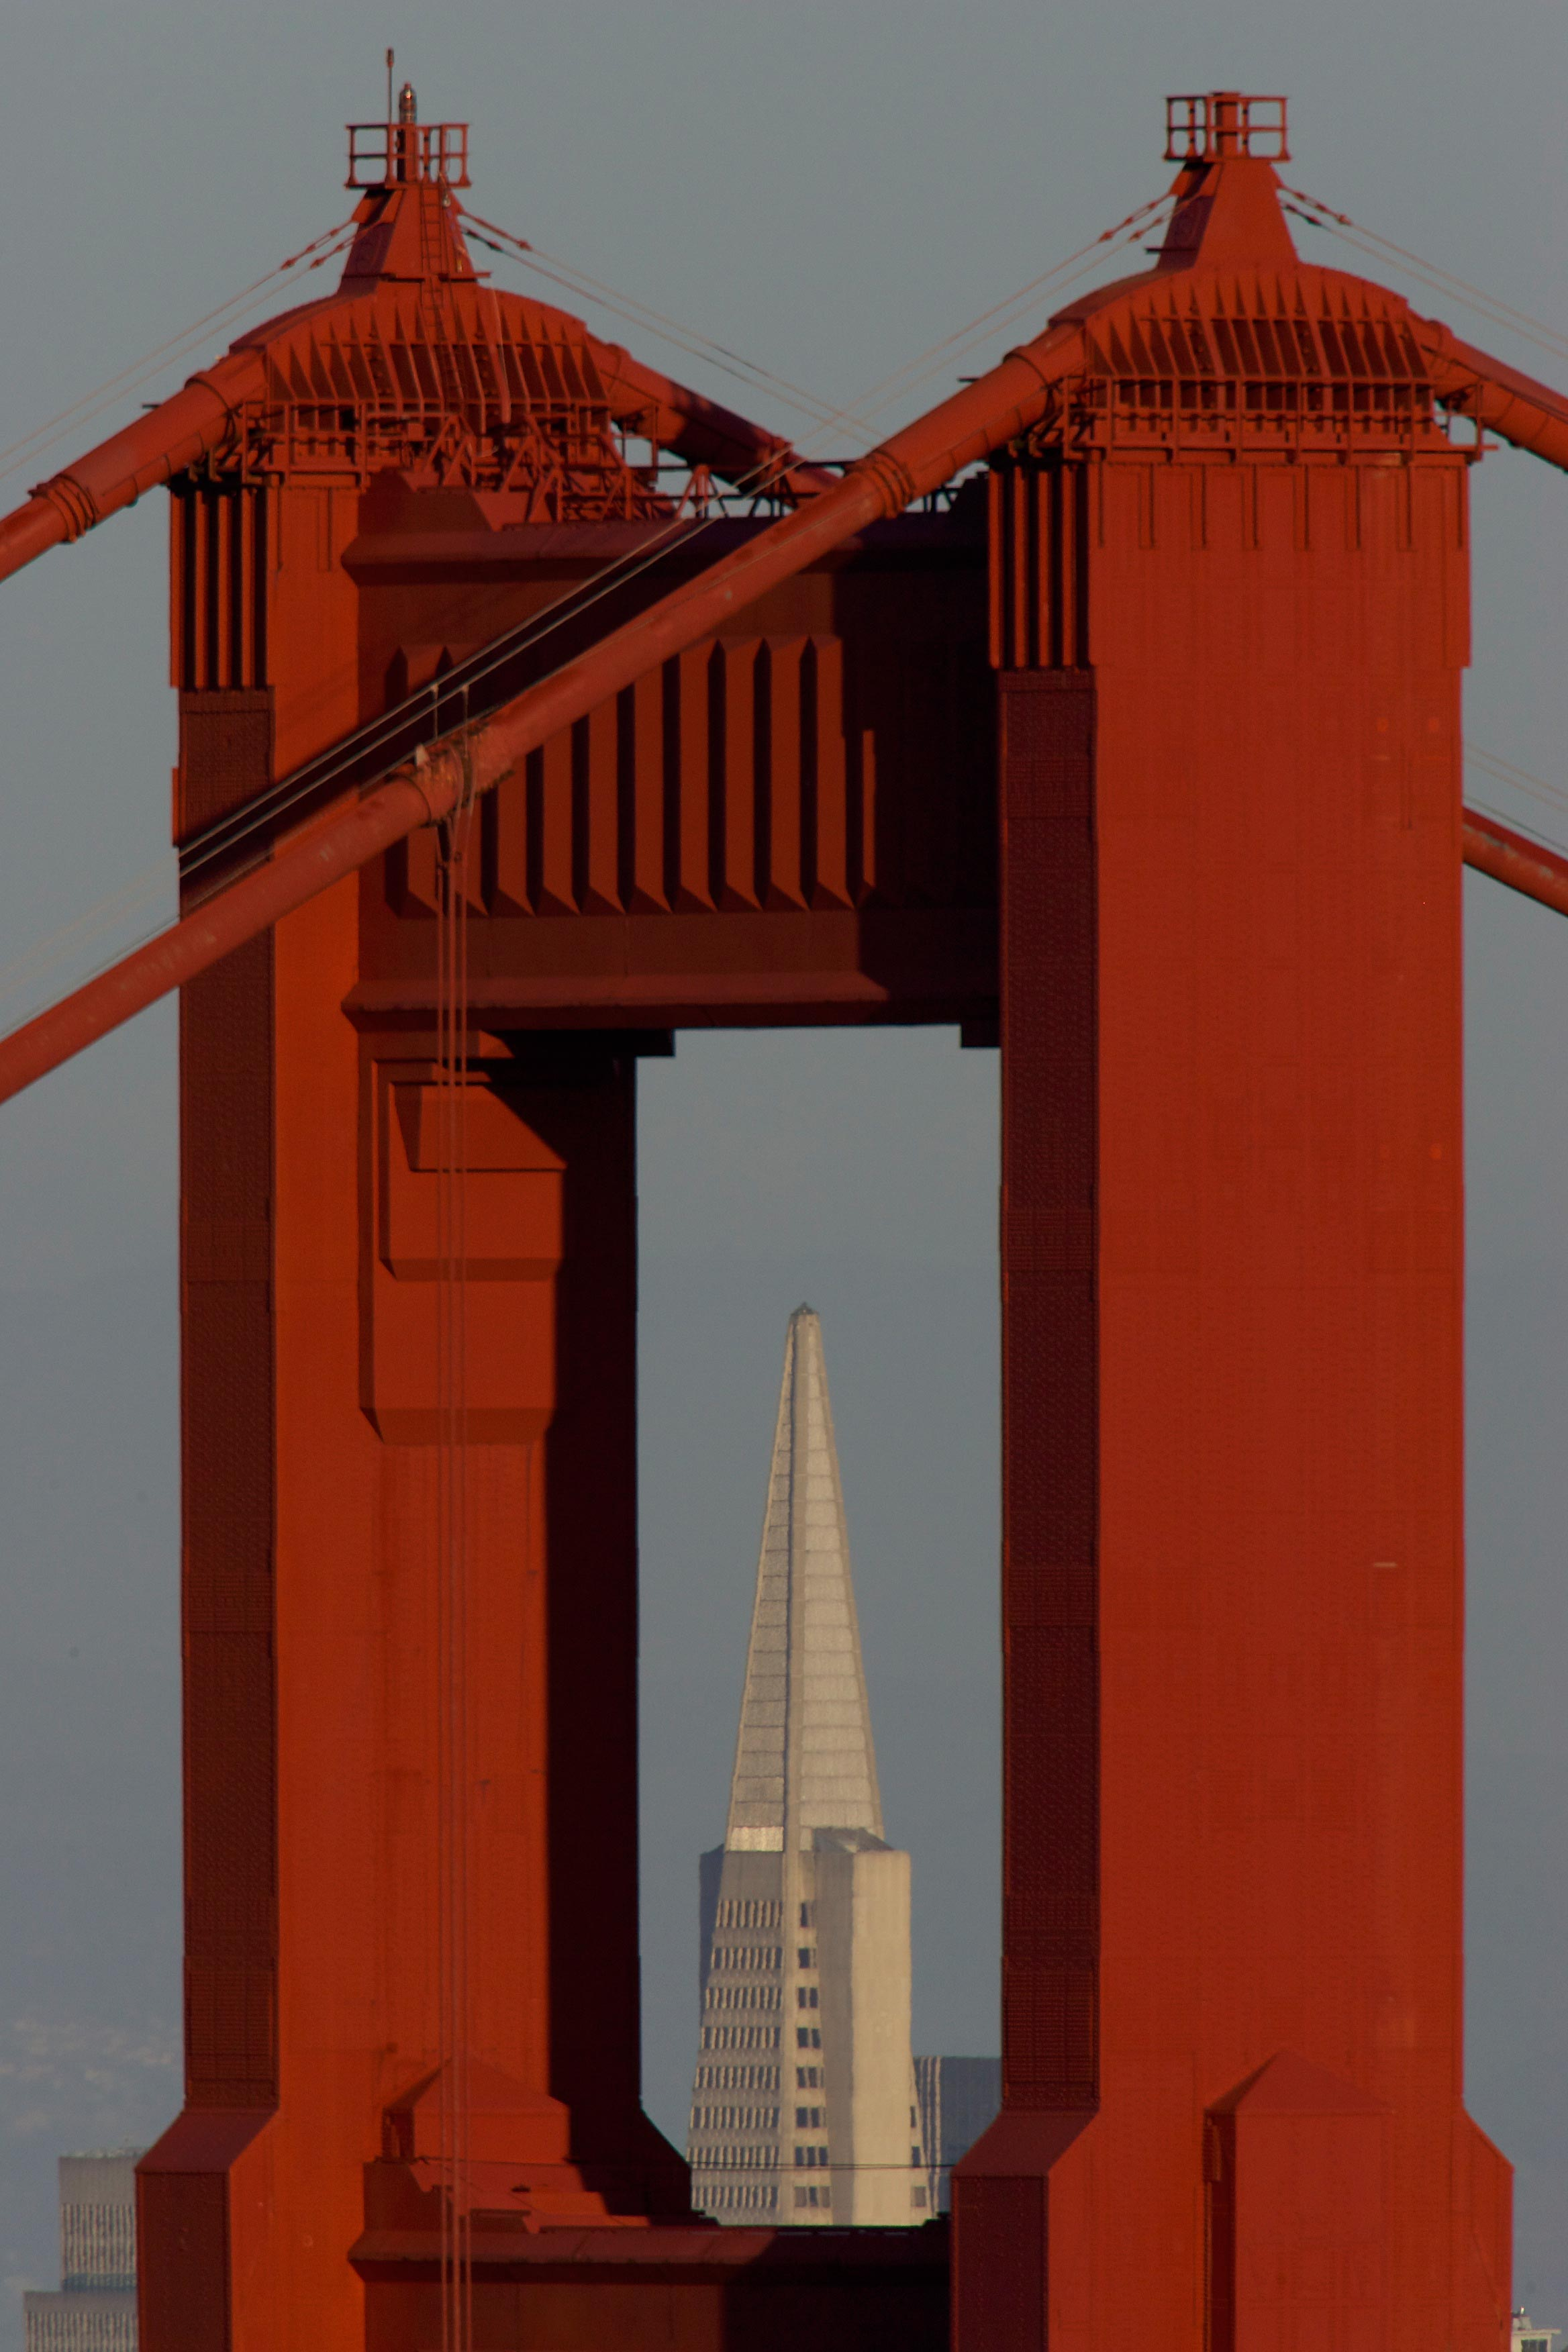 Golden Gate Bridge and Transamerica Pyramid